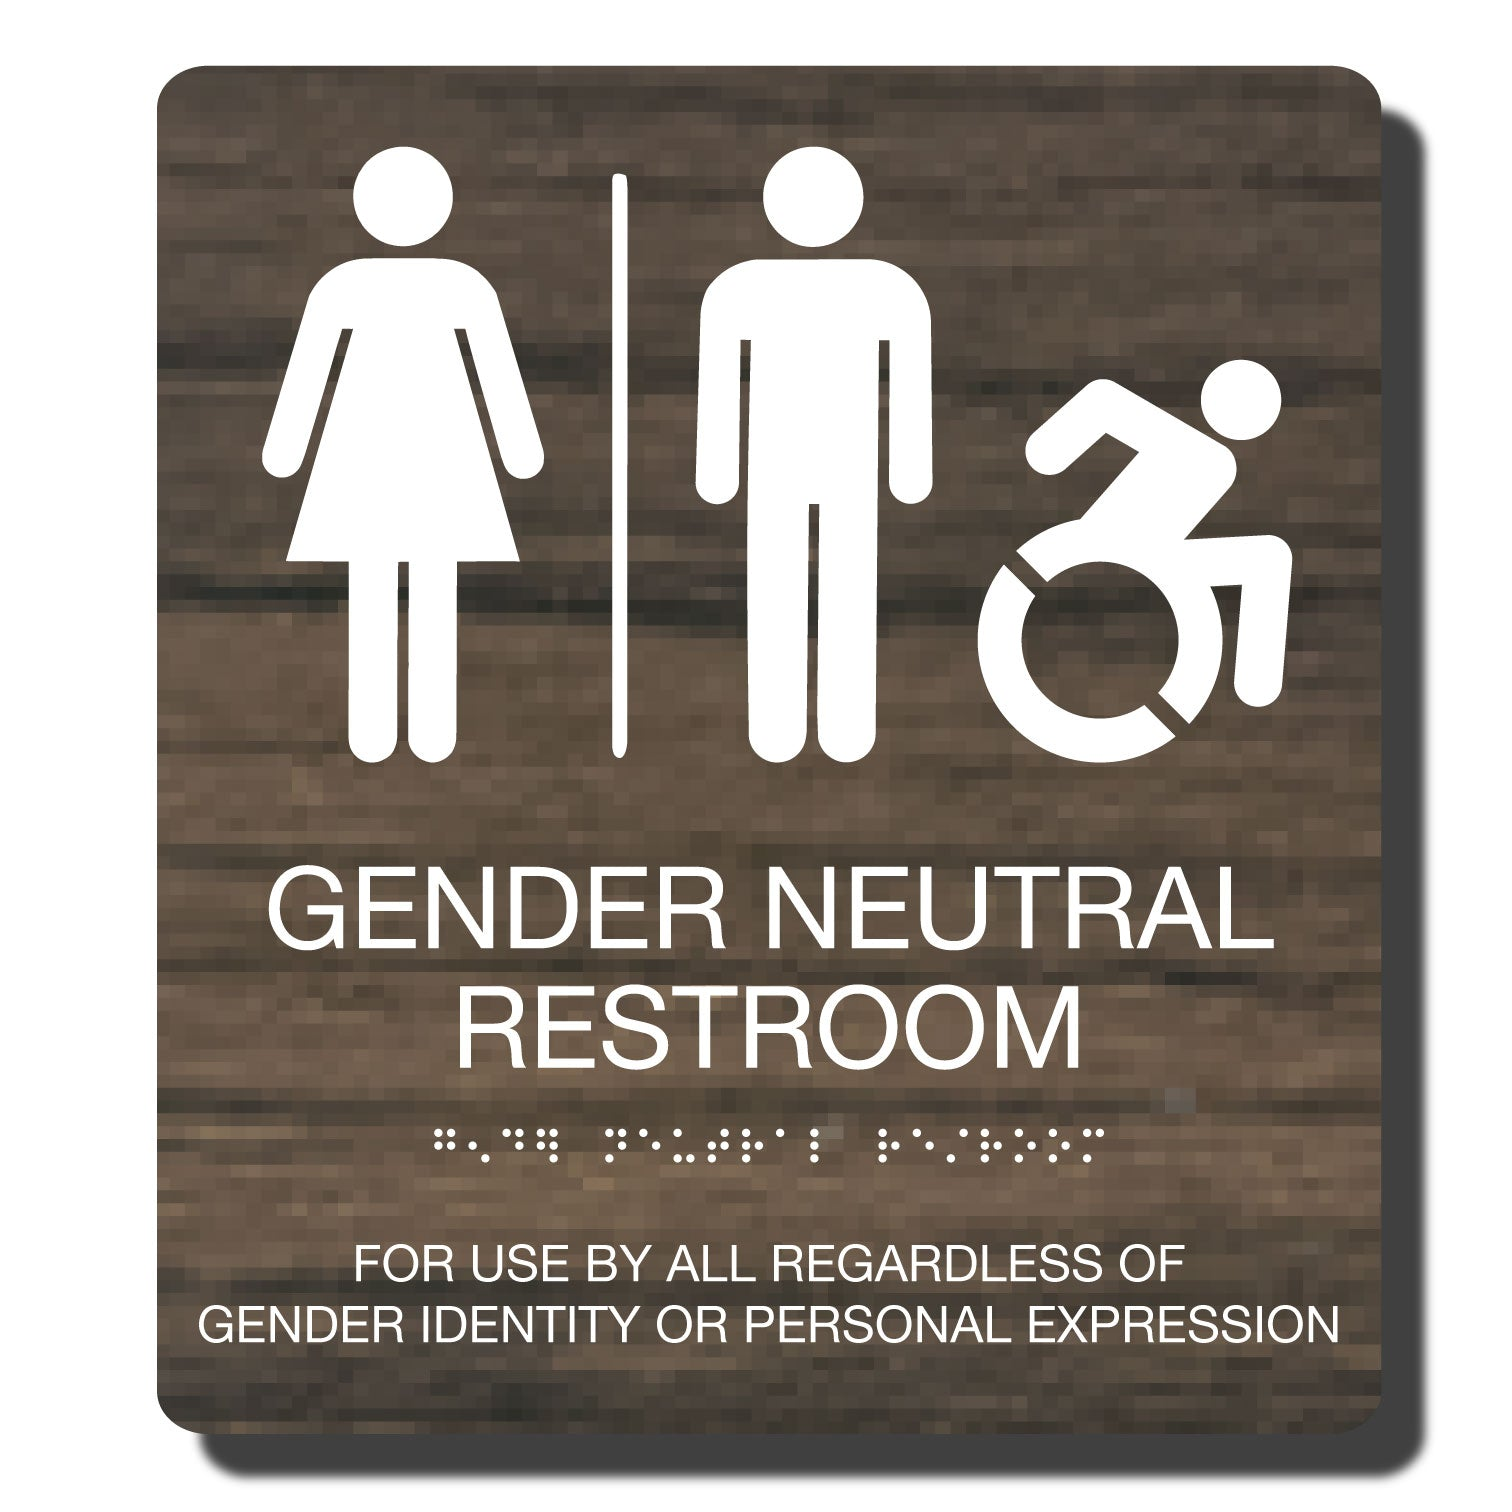 Standard ADA Sign - NapADASigns - ADA Gender Neutral Restroom Accessible Sign with Braille - Kona with White - 9